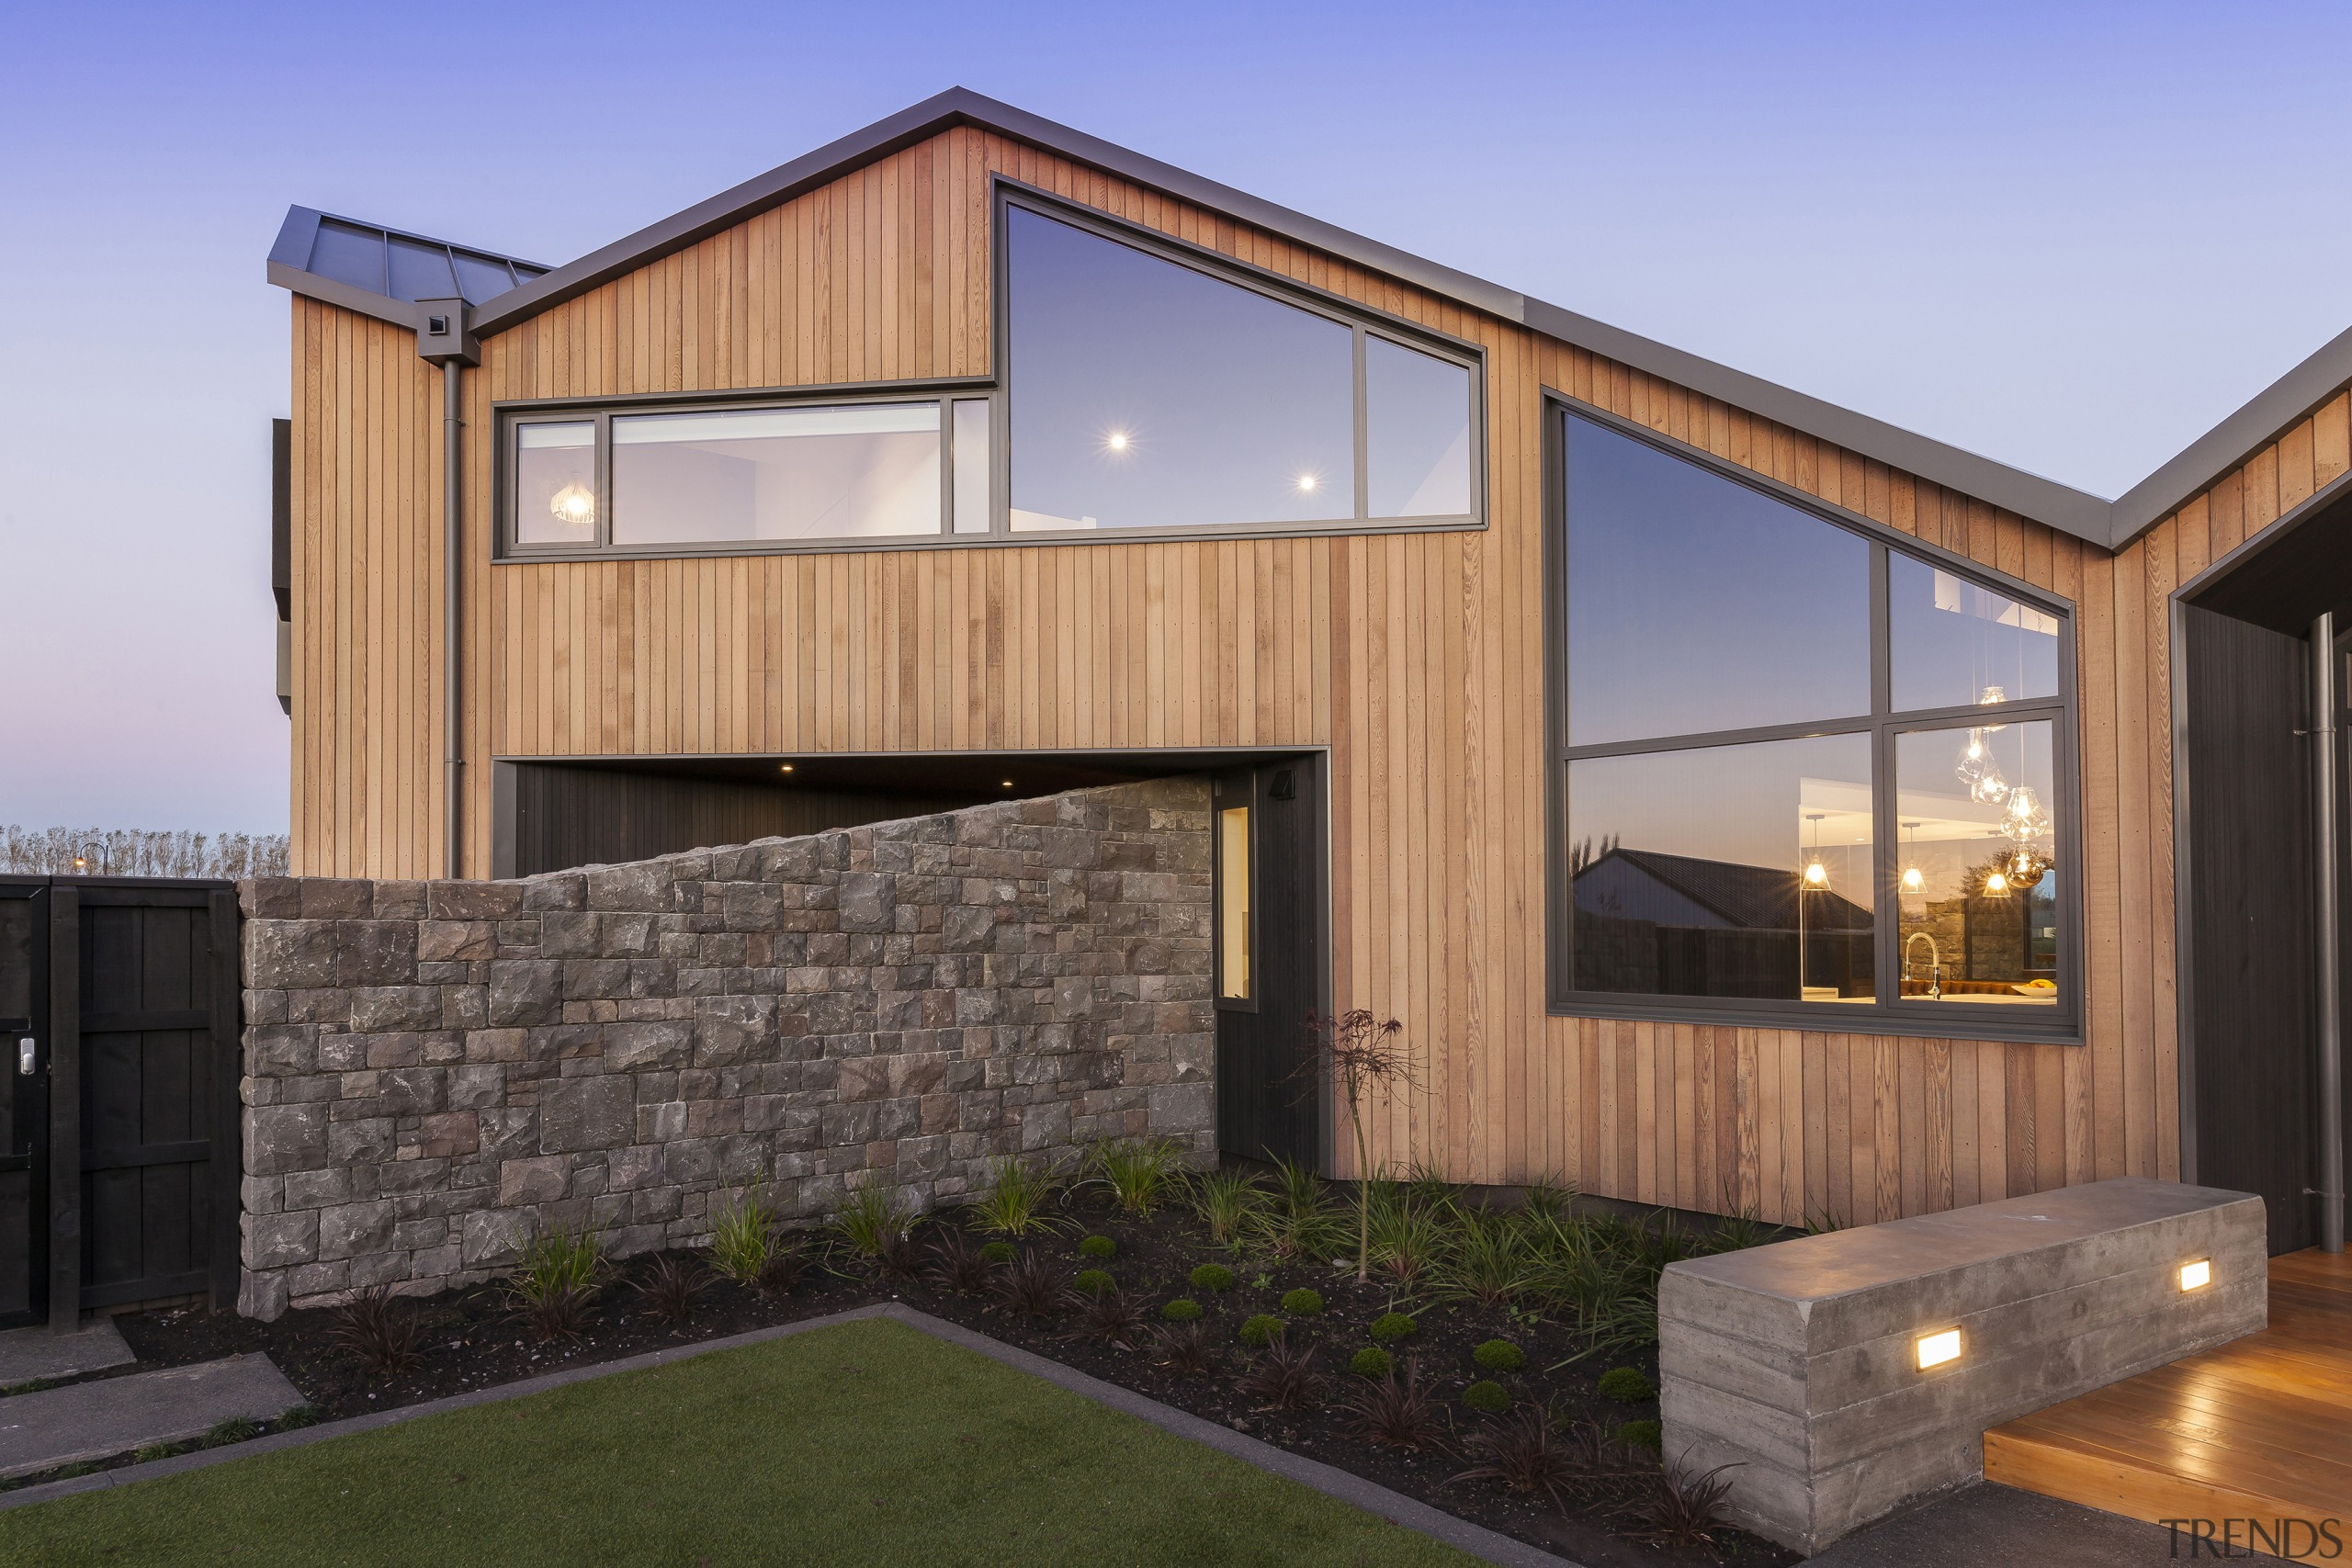 Stone and wood make pleasing companions on the